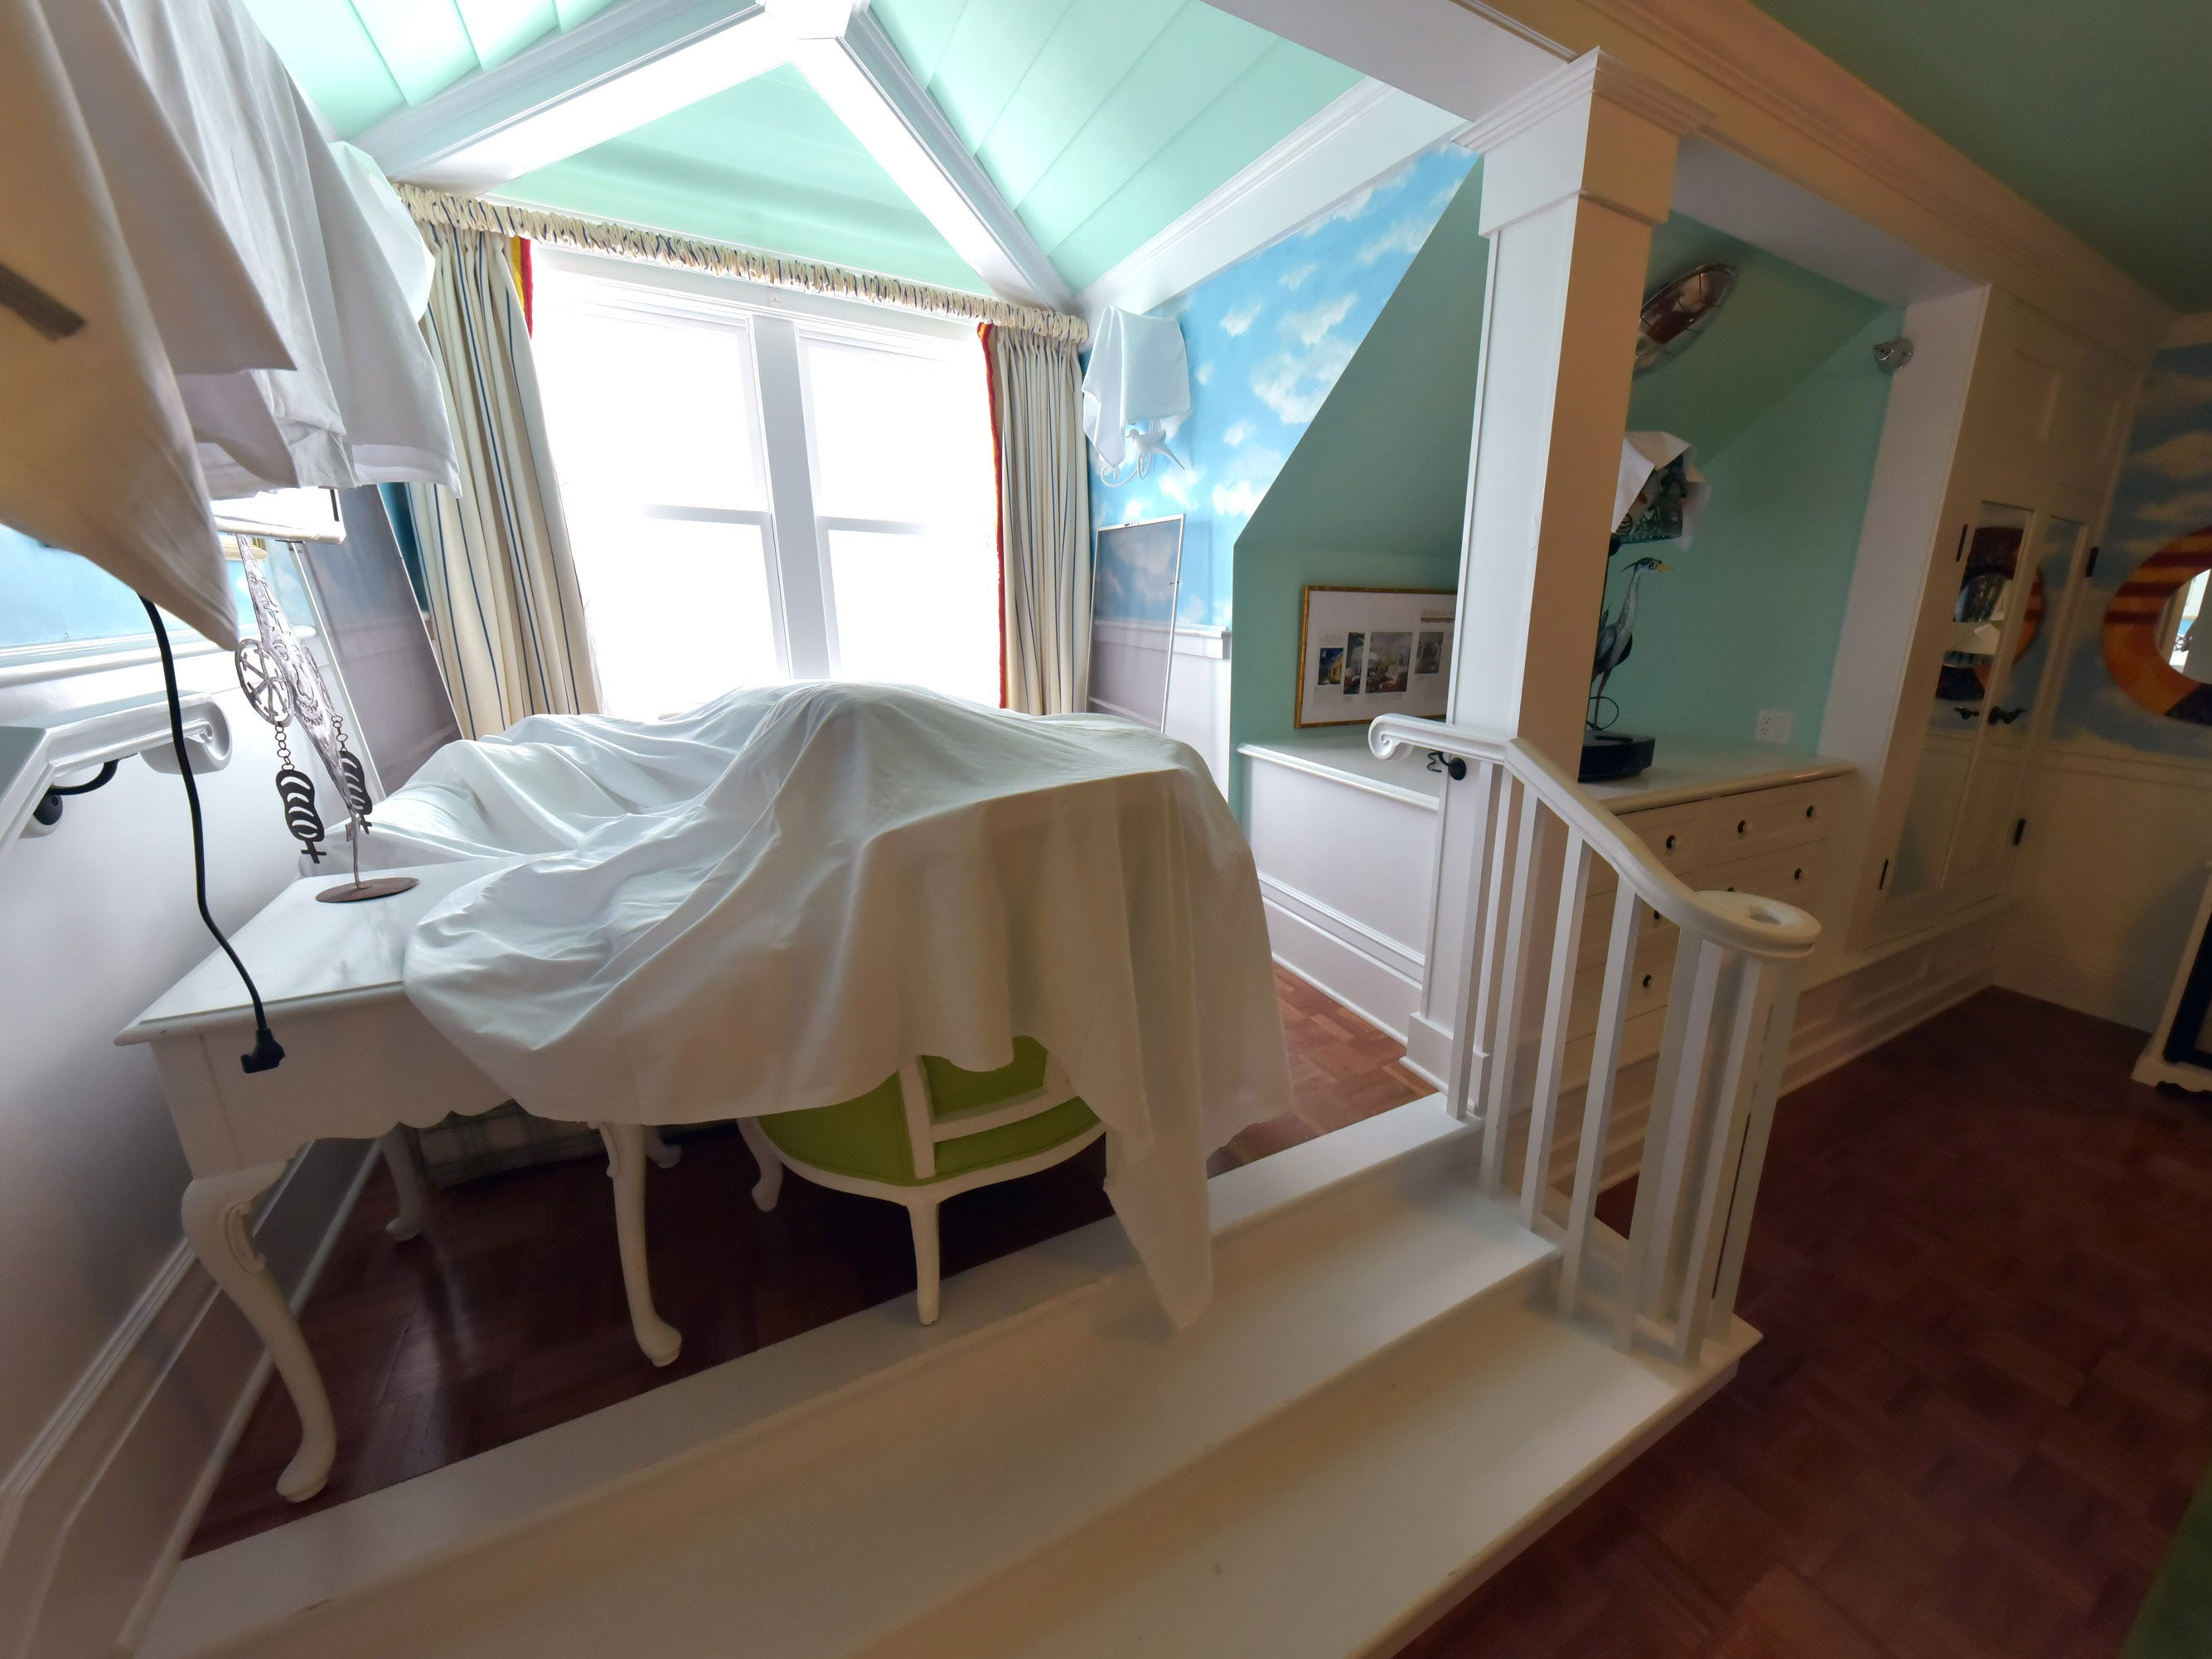 A completed parlor is shown with winter covers in Mackinac Island's iconic Grand Hotel.